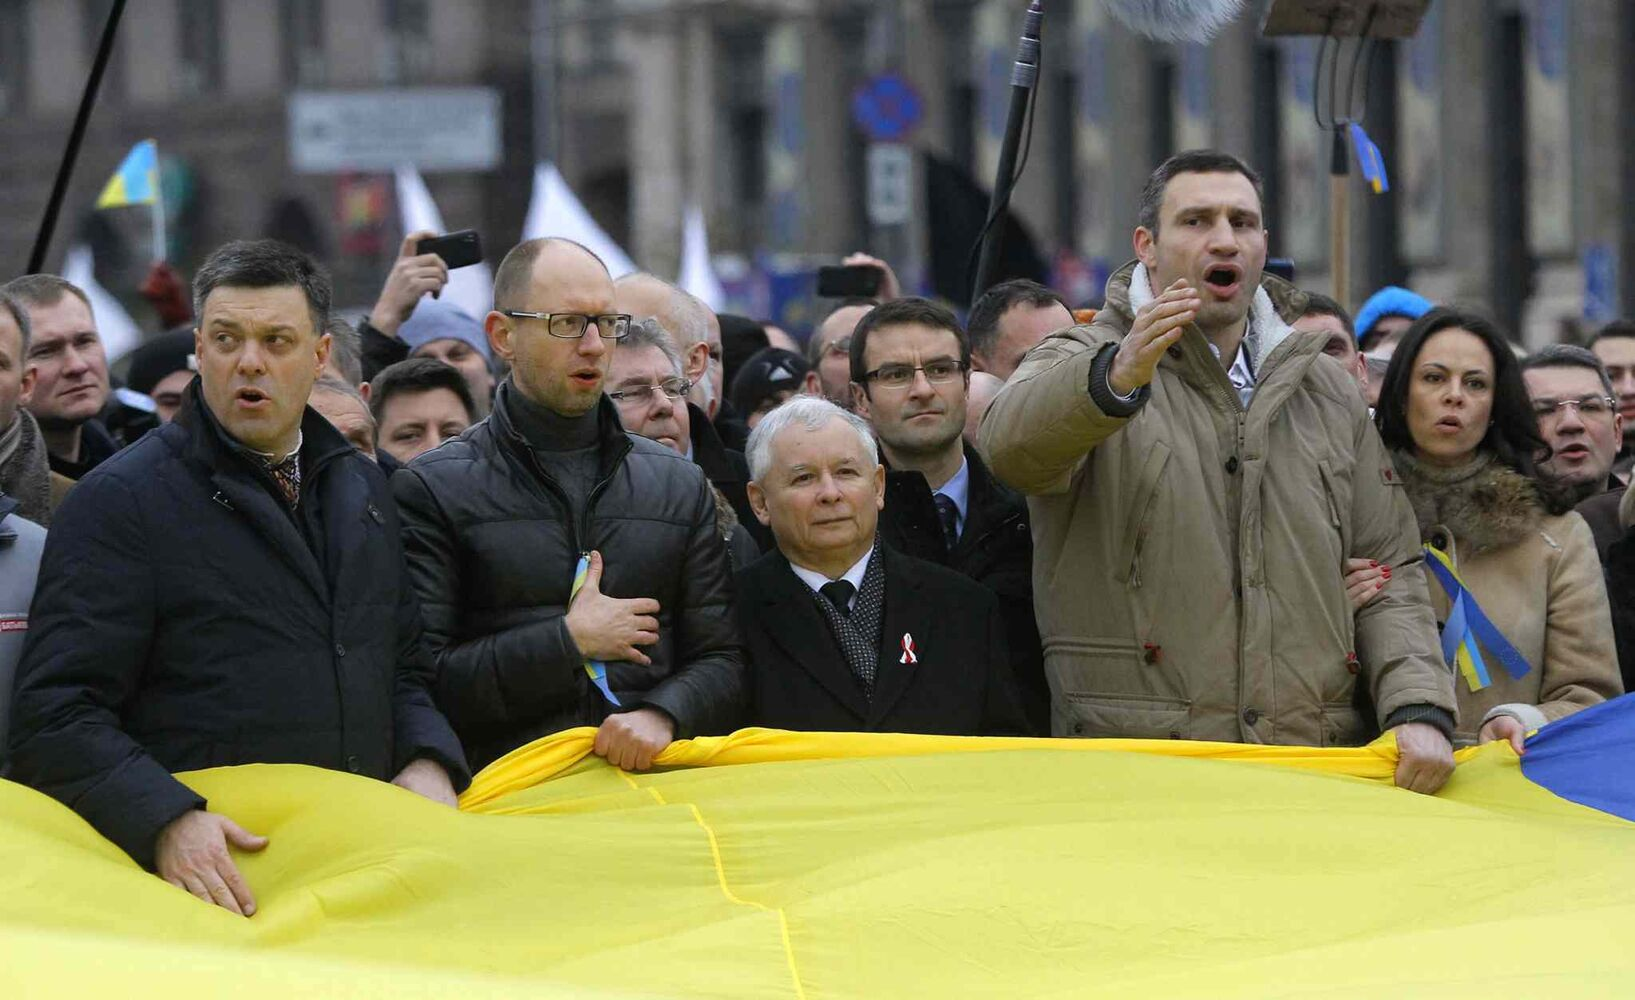 Lawmaker and chairman of the Ukrainian opposition party Udar (Punch), WBC heavyweight boxing champion Vitali Klitschko (right), is flanked by Polish politician Jaroslaw Kaczynski as they march during a rally in downtown Kiev, Ukraine, on Sunday. As many as 100,000 demonstrators chased away police to rally in the center of Ukraine's capital on Sunday, defying a government ban on protests on Independence Square, in the biggest show of anger over the president's refusal to sign an agreement with the European Union.  (Sergei Grits / The Associated Press)